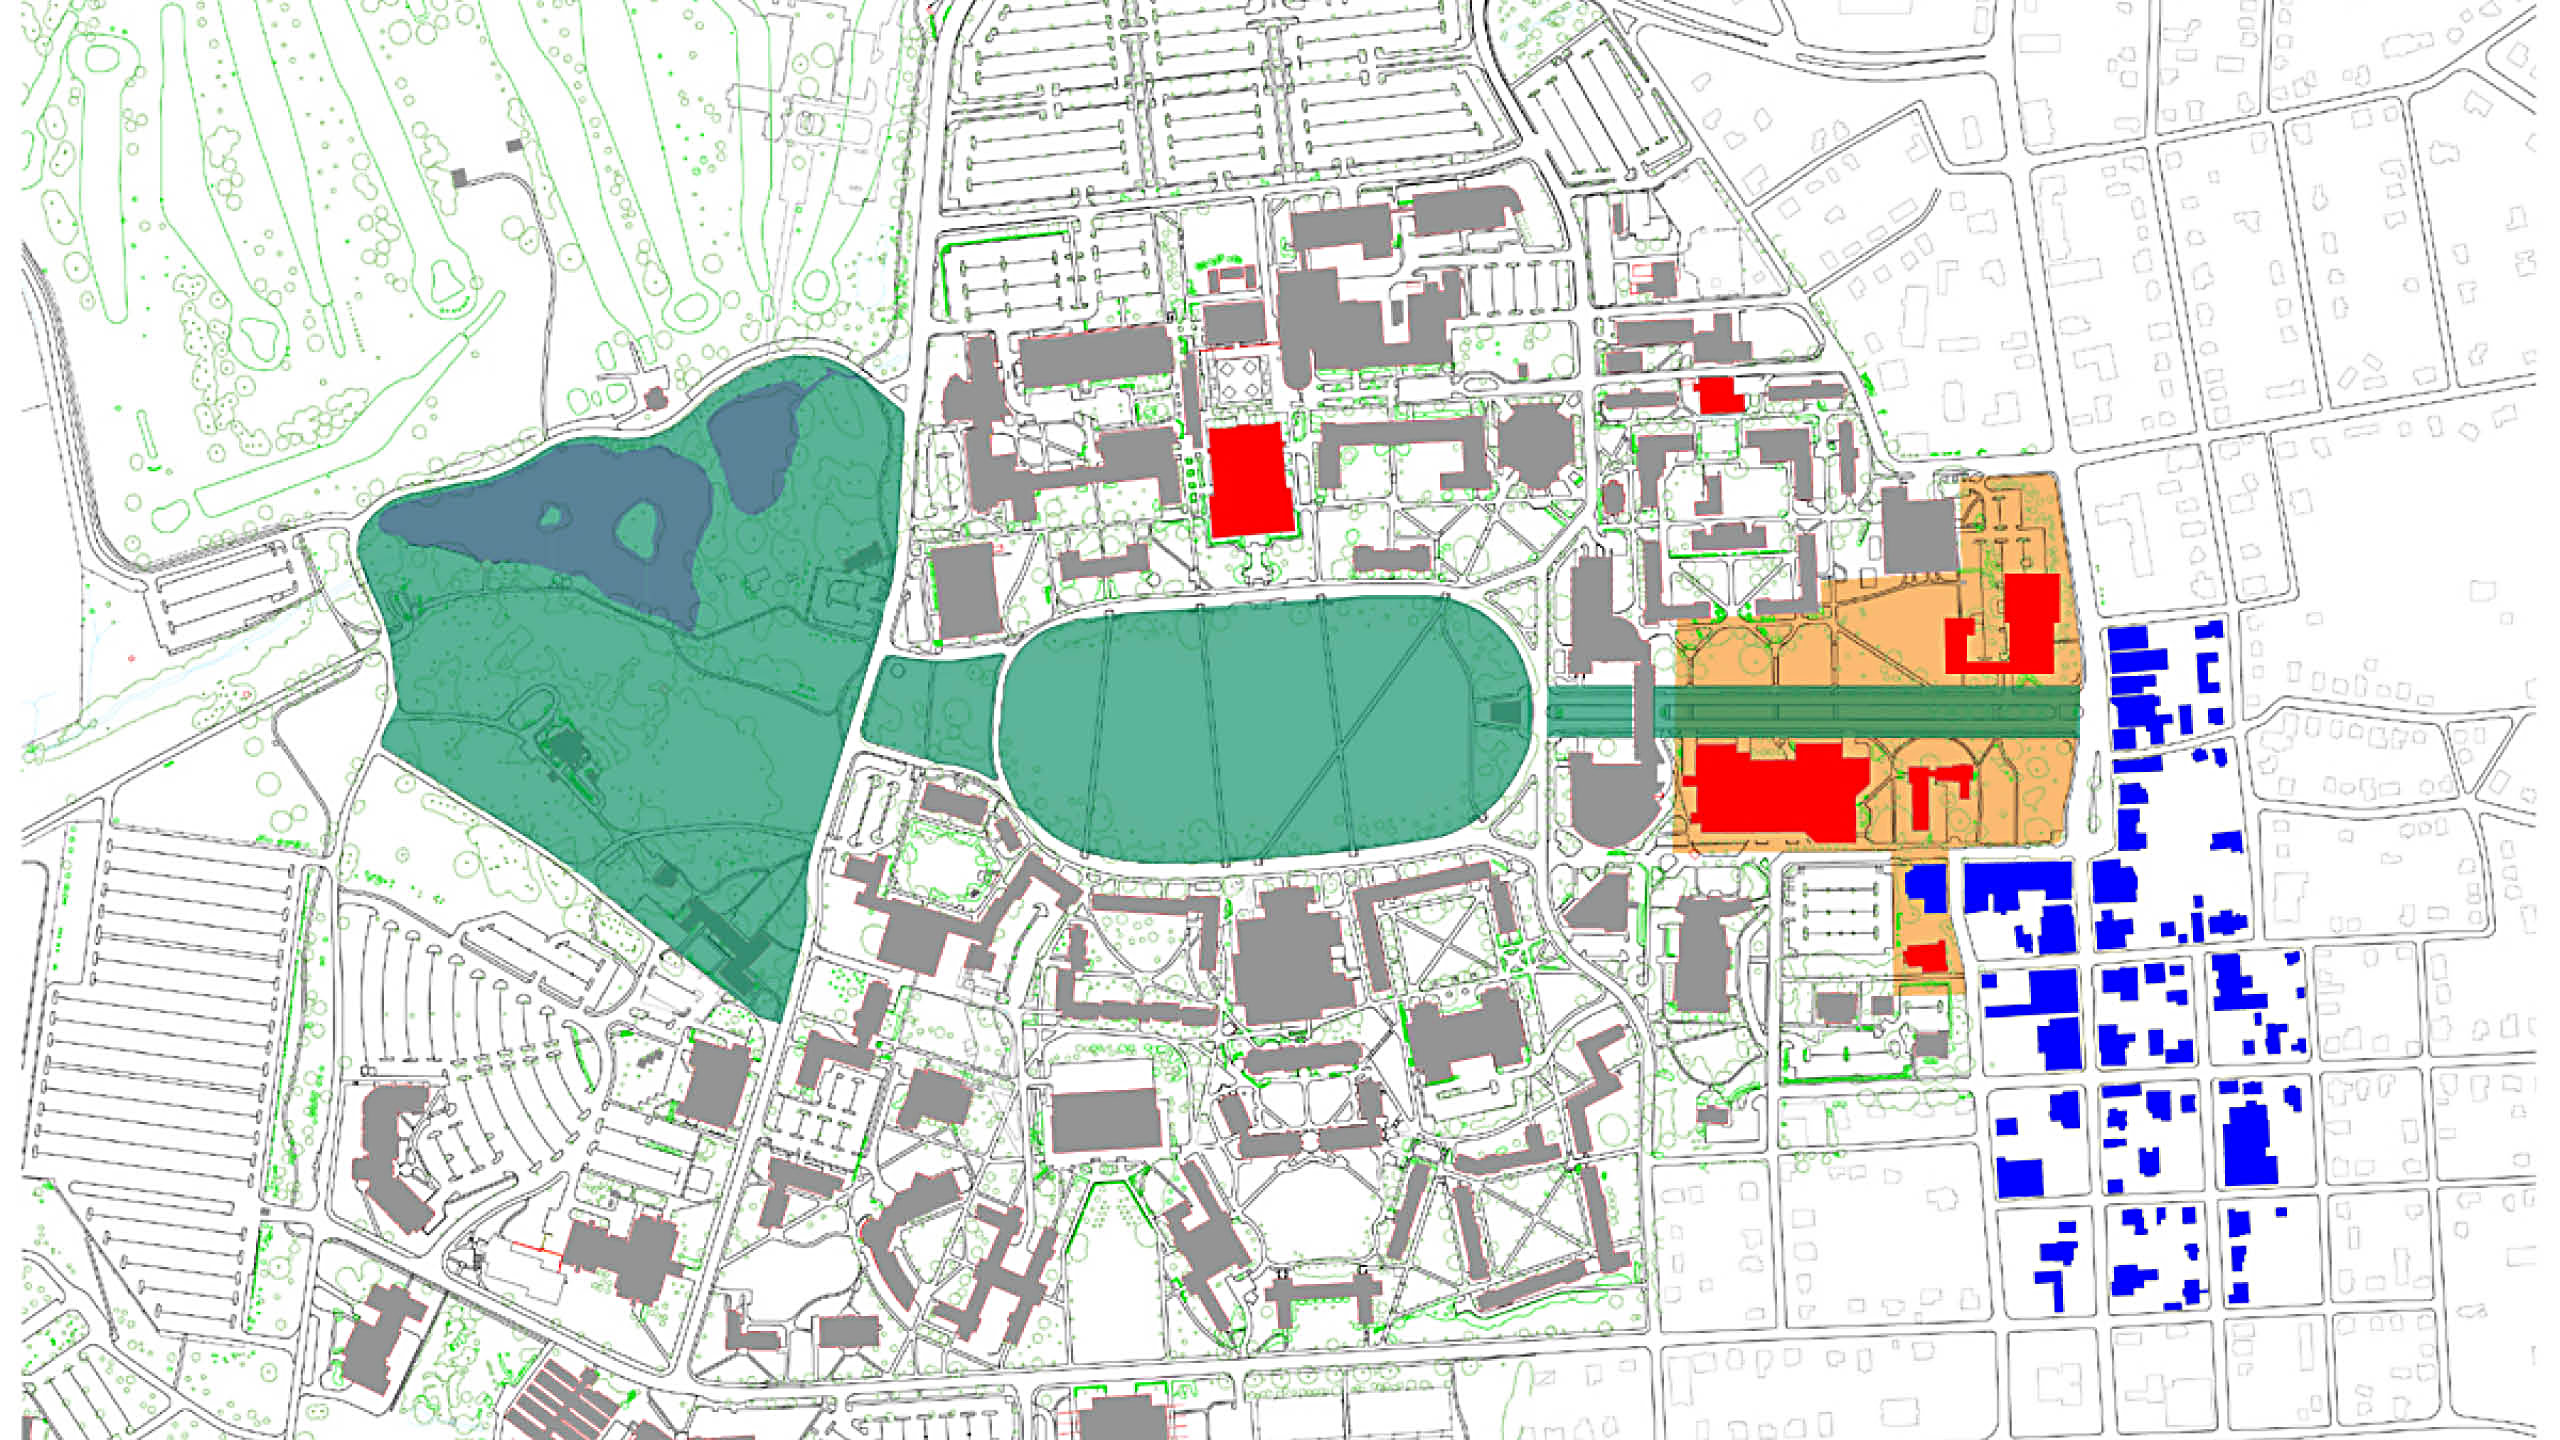 Arts Precinct Plan – Virginia Tech / image 1